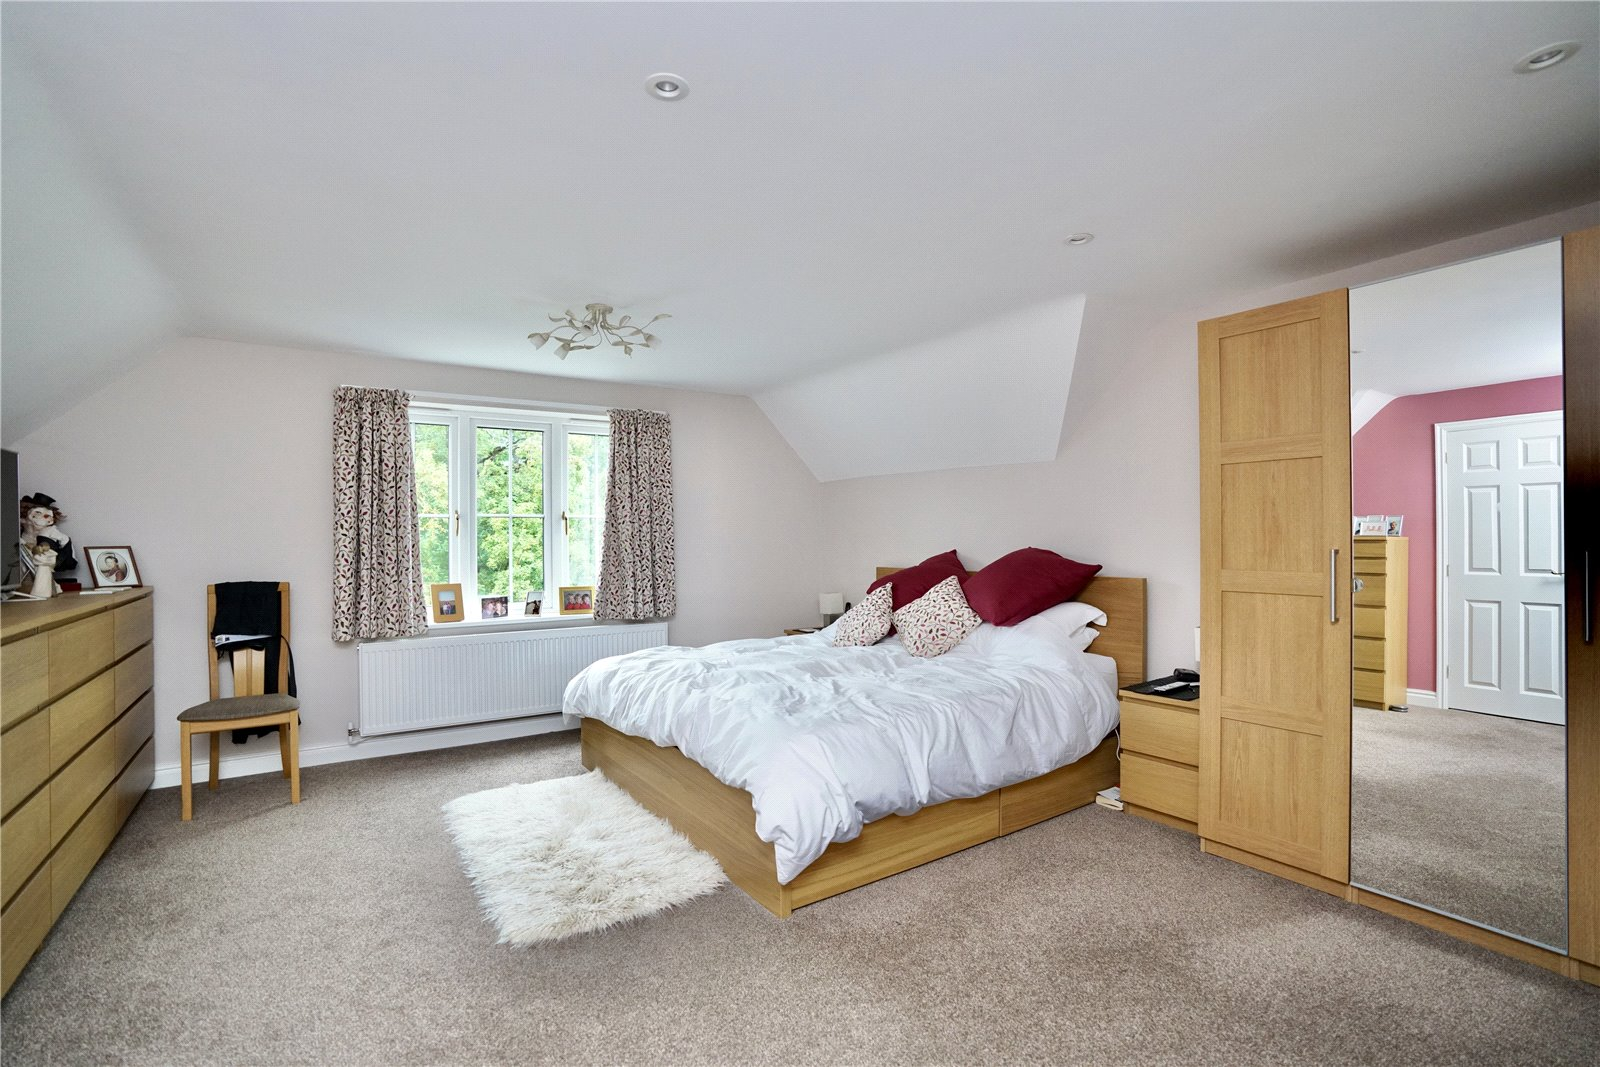 4 bed house for sale in Great Gransden  - Property Image 4